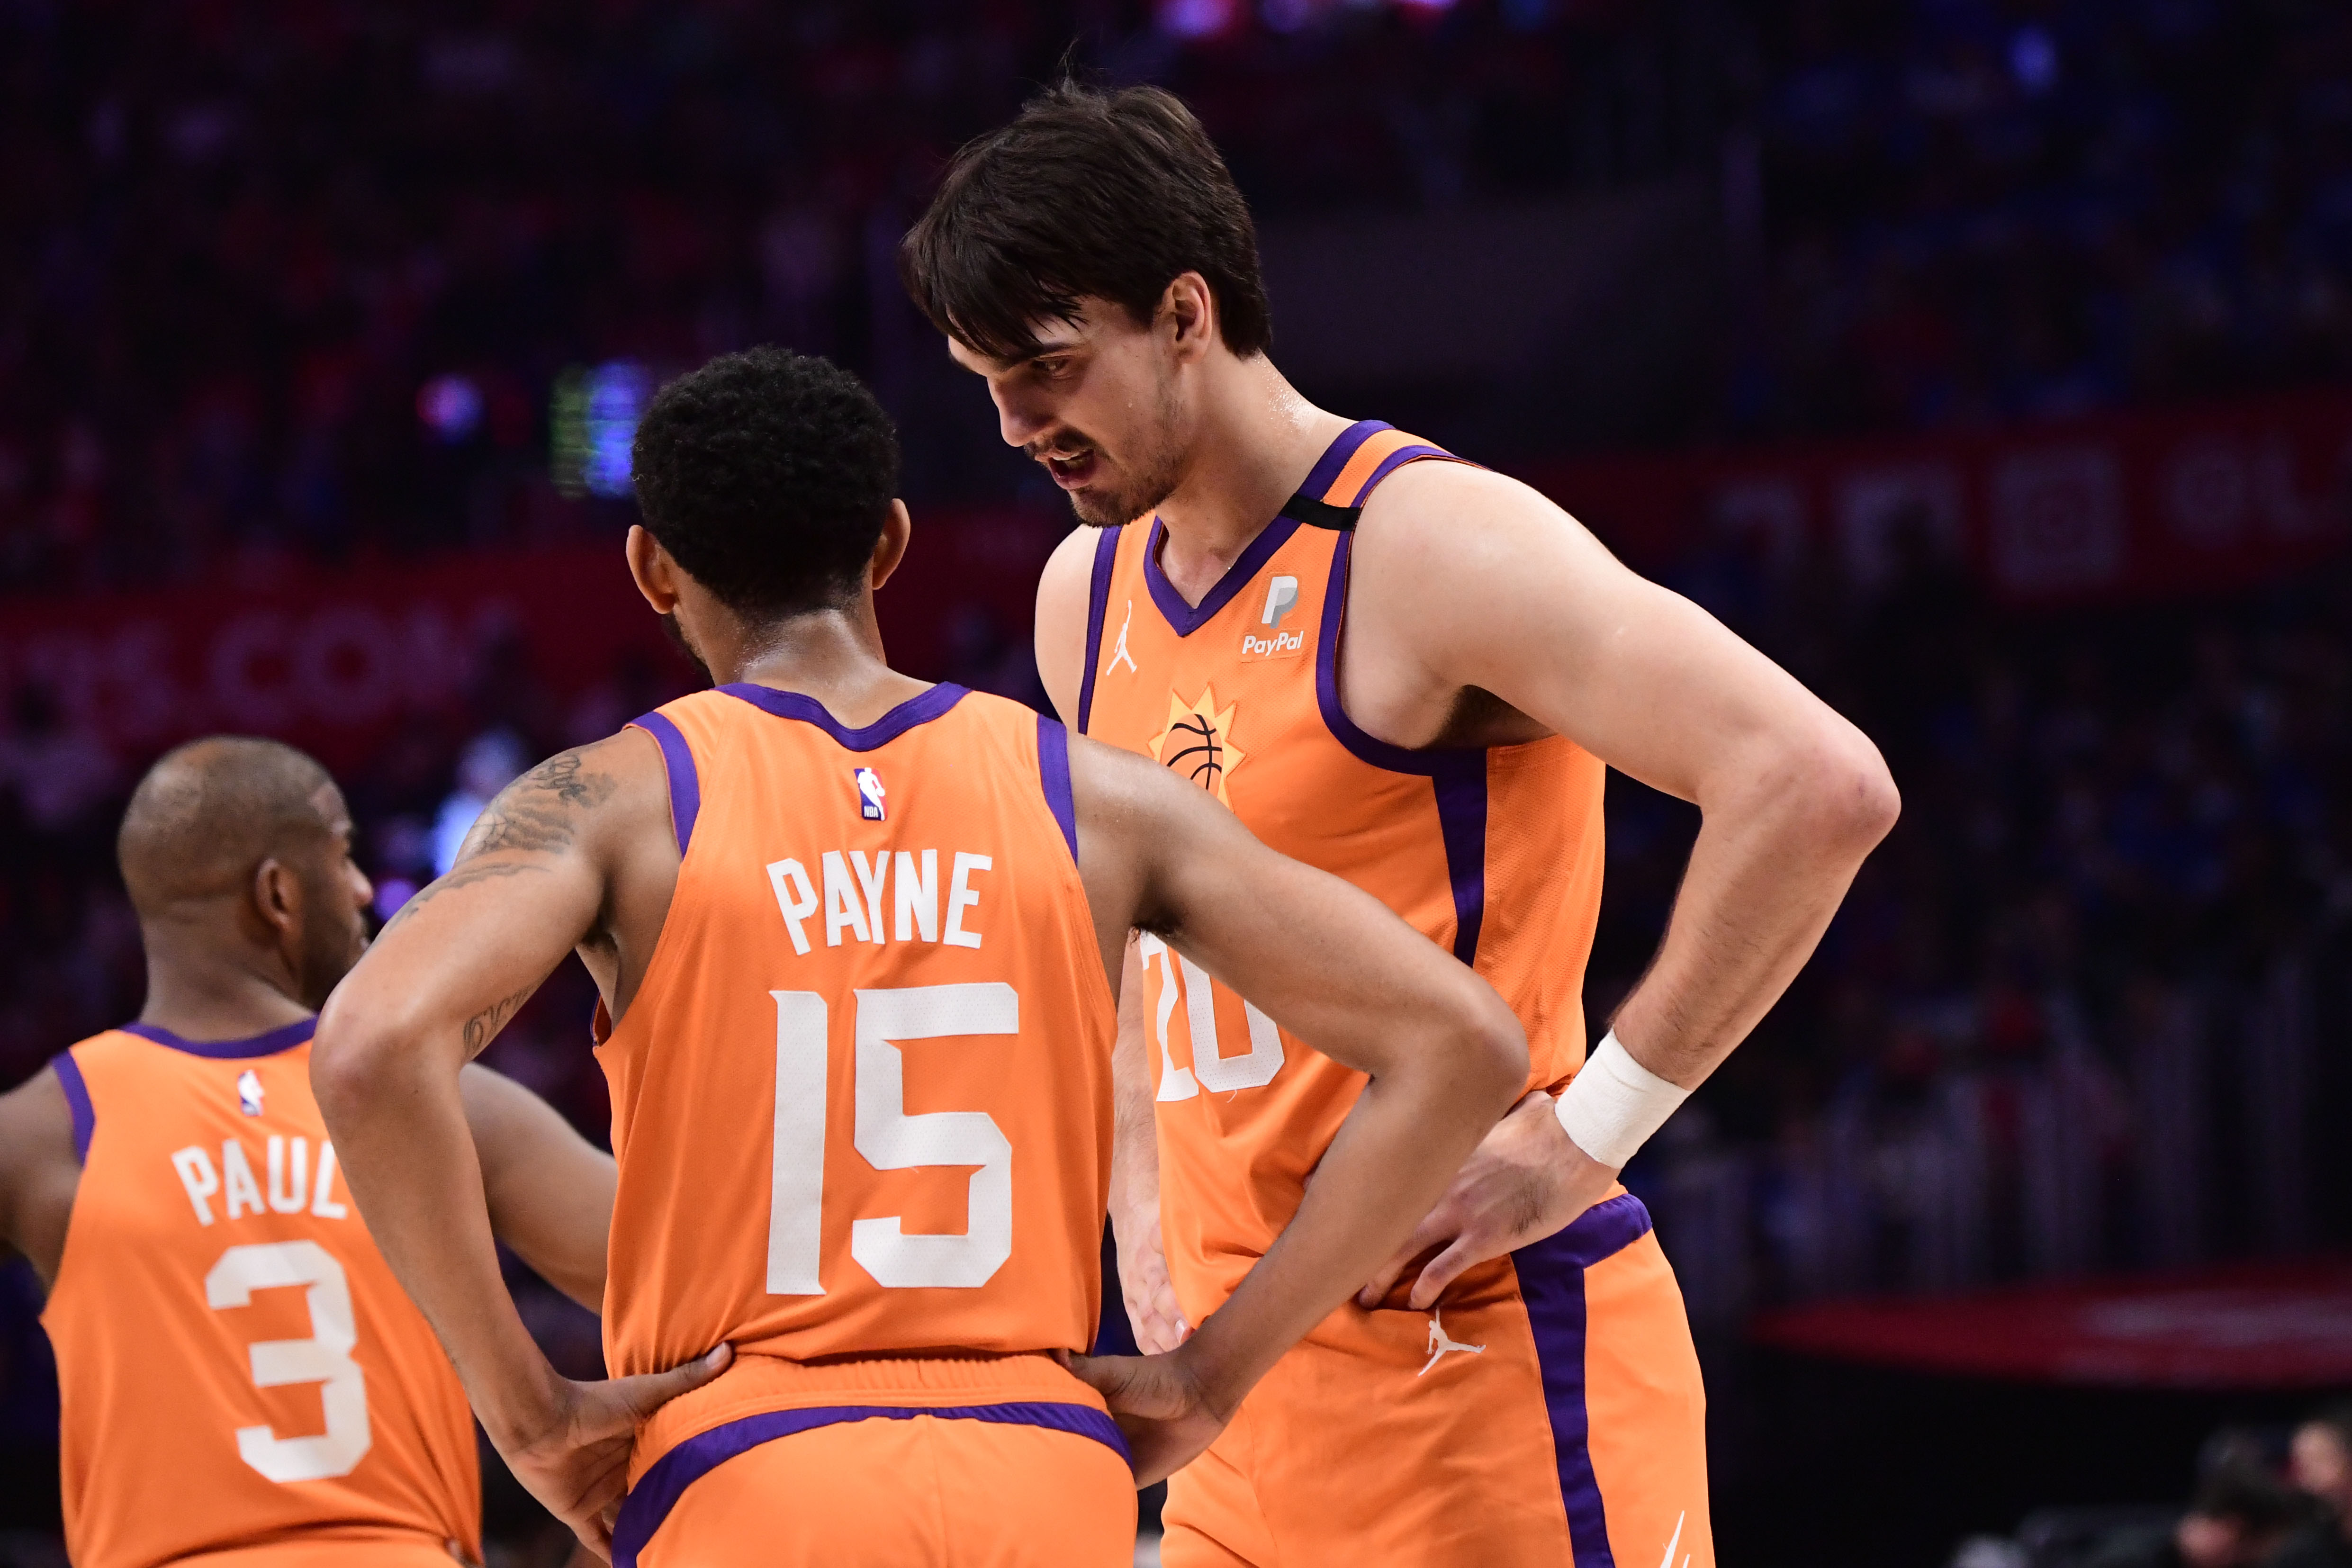 Dario Saric talks with Cameron Payne of the Phoenix Suns during Game 6 of the Western Conference Finals of the 2021 NBA Playoffs on June 30, 2021 at STAPLES Center in Los Angeles, California.